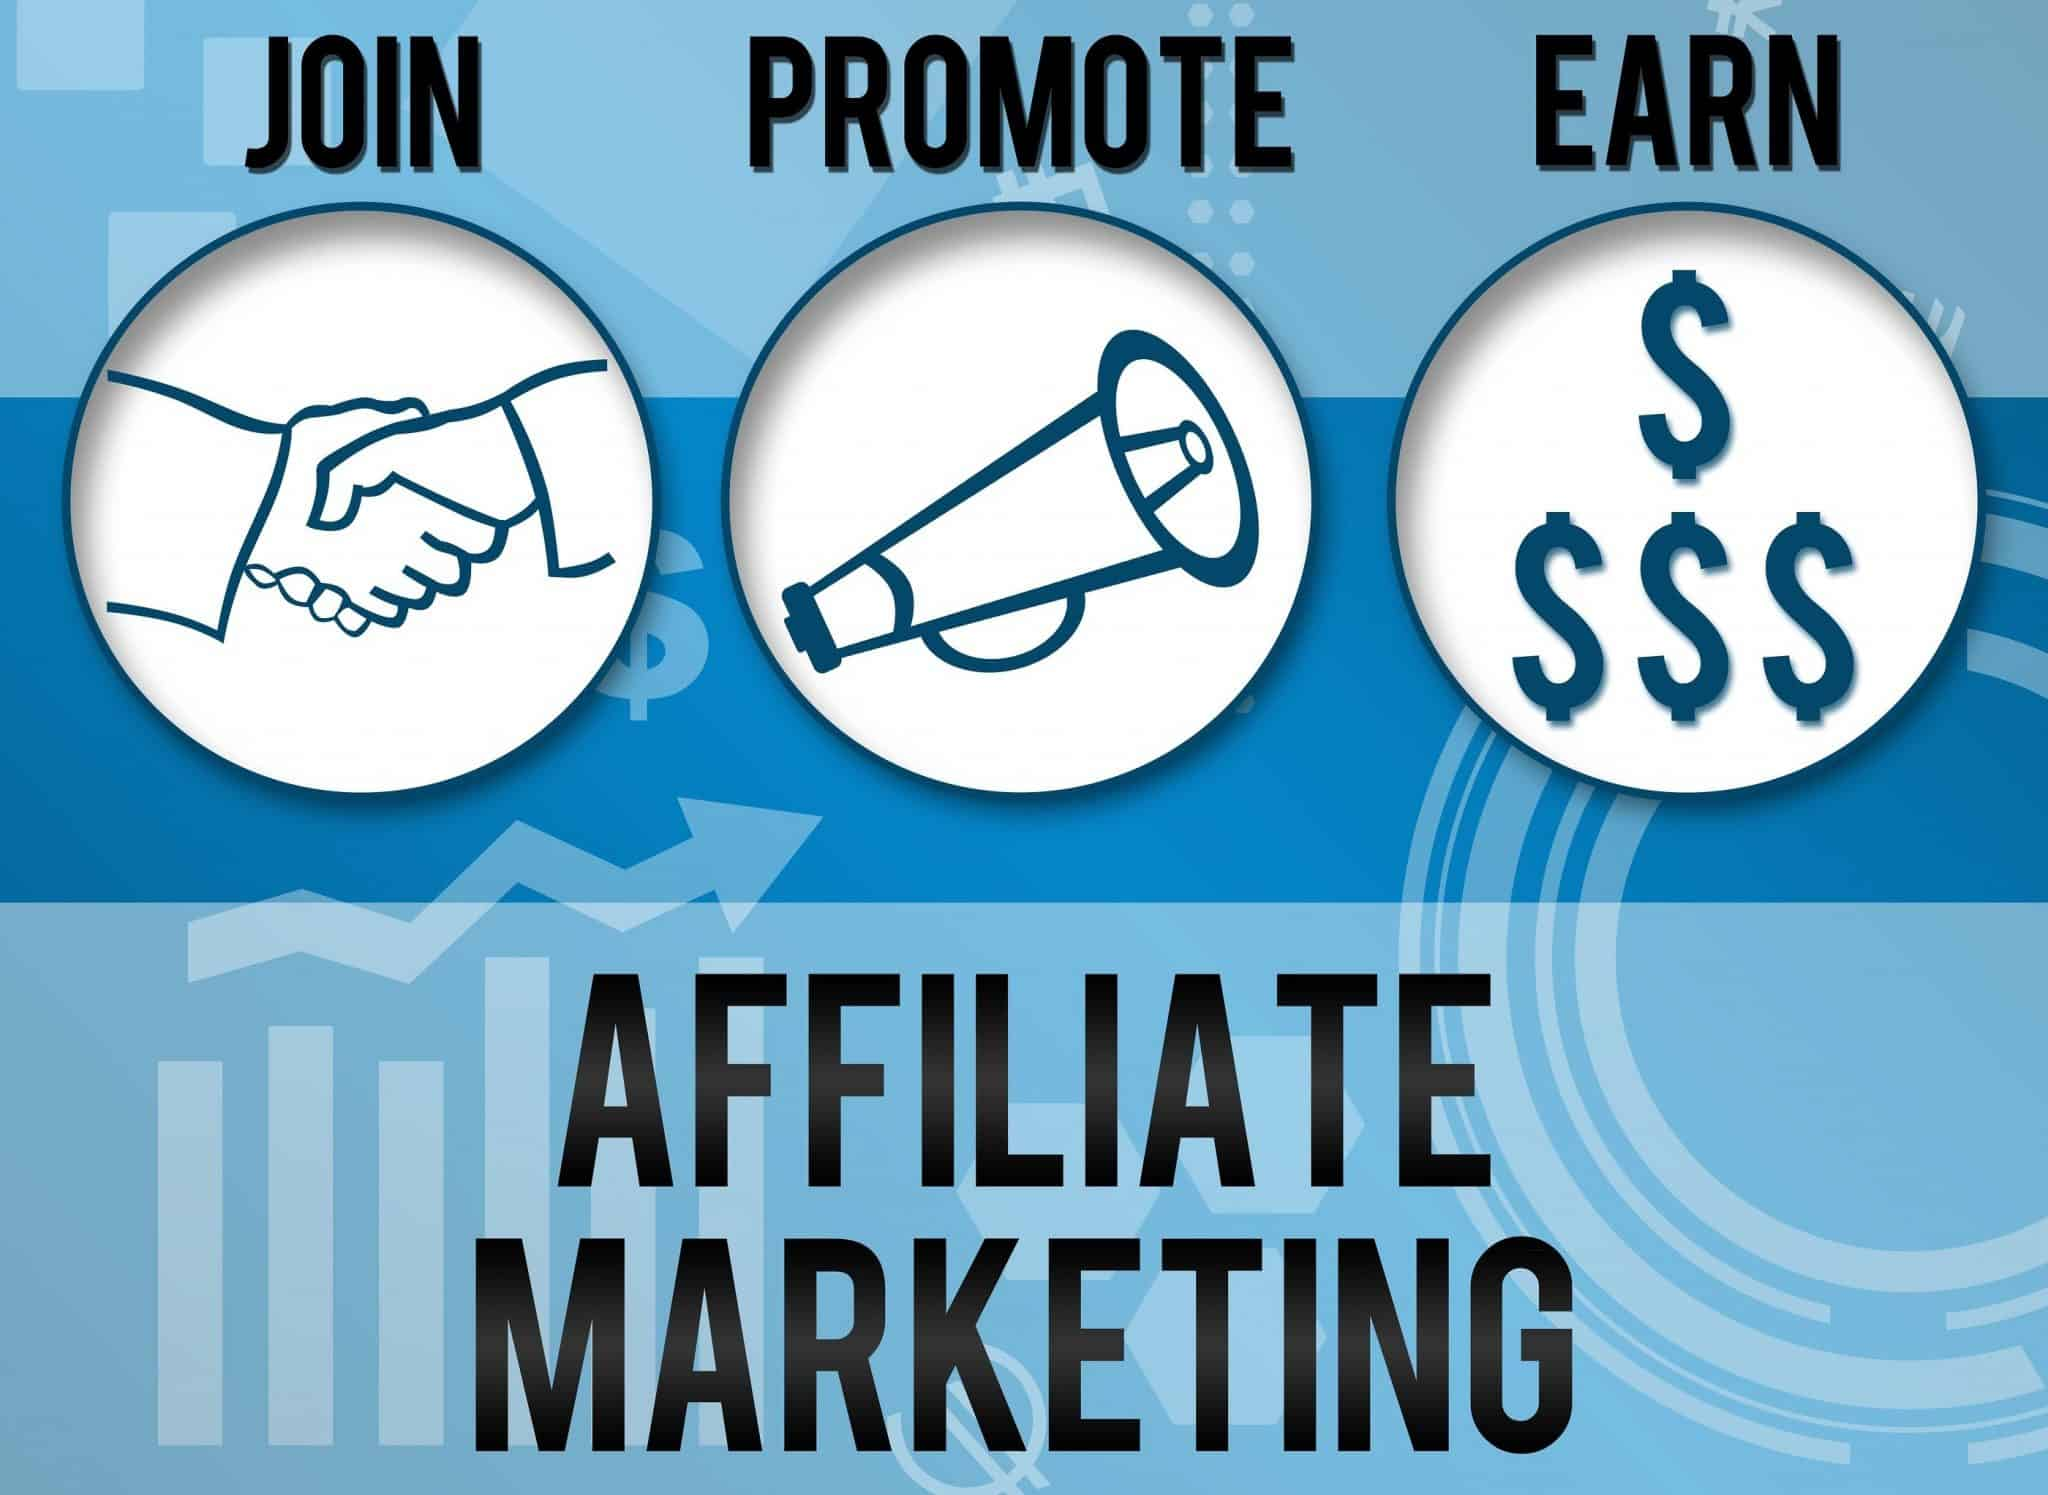 Affiliate-Marketing-2-e1470527582249.jpg (2800×2044)